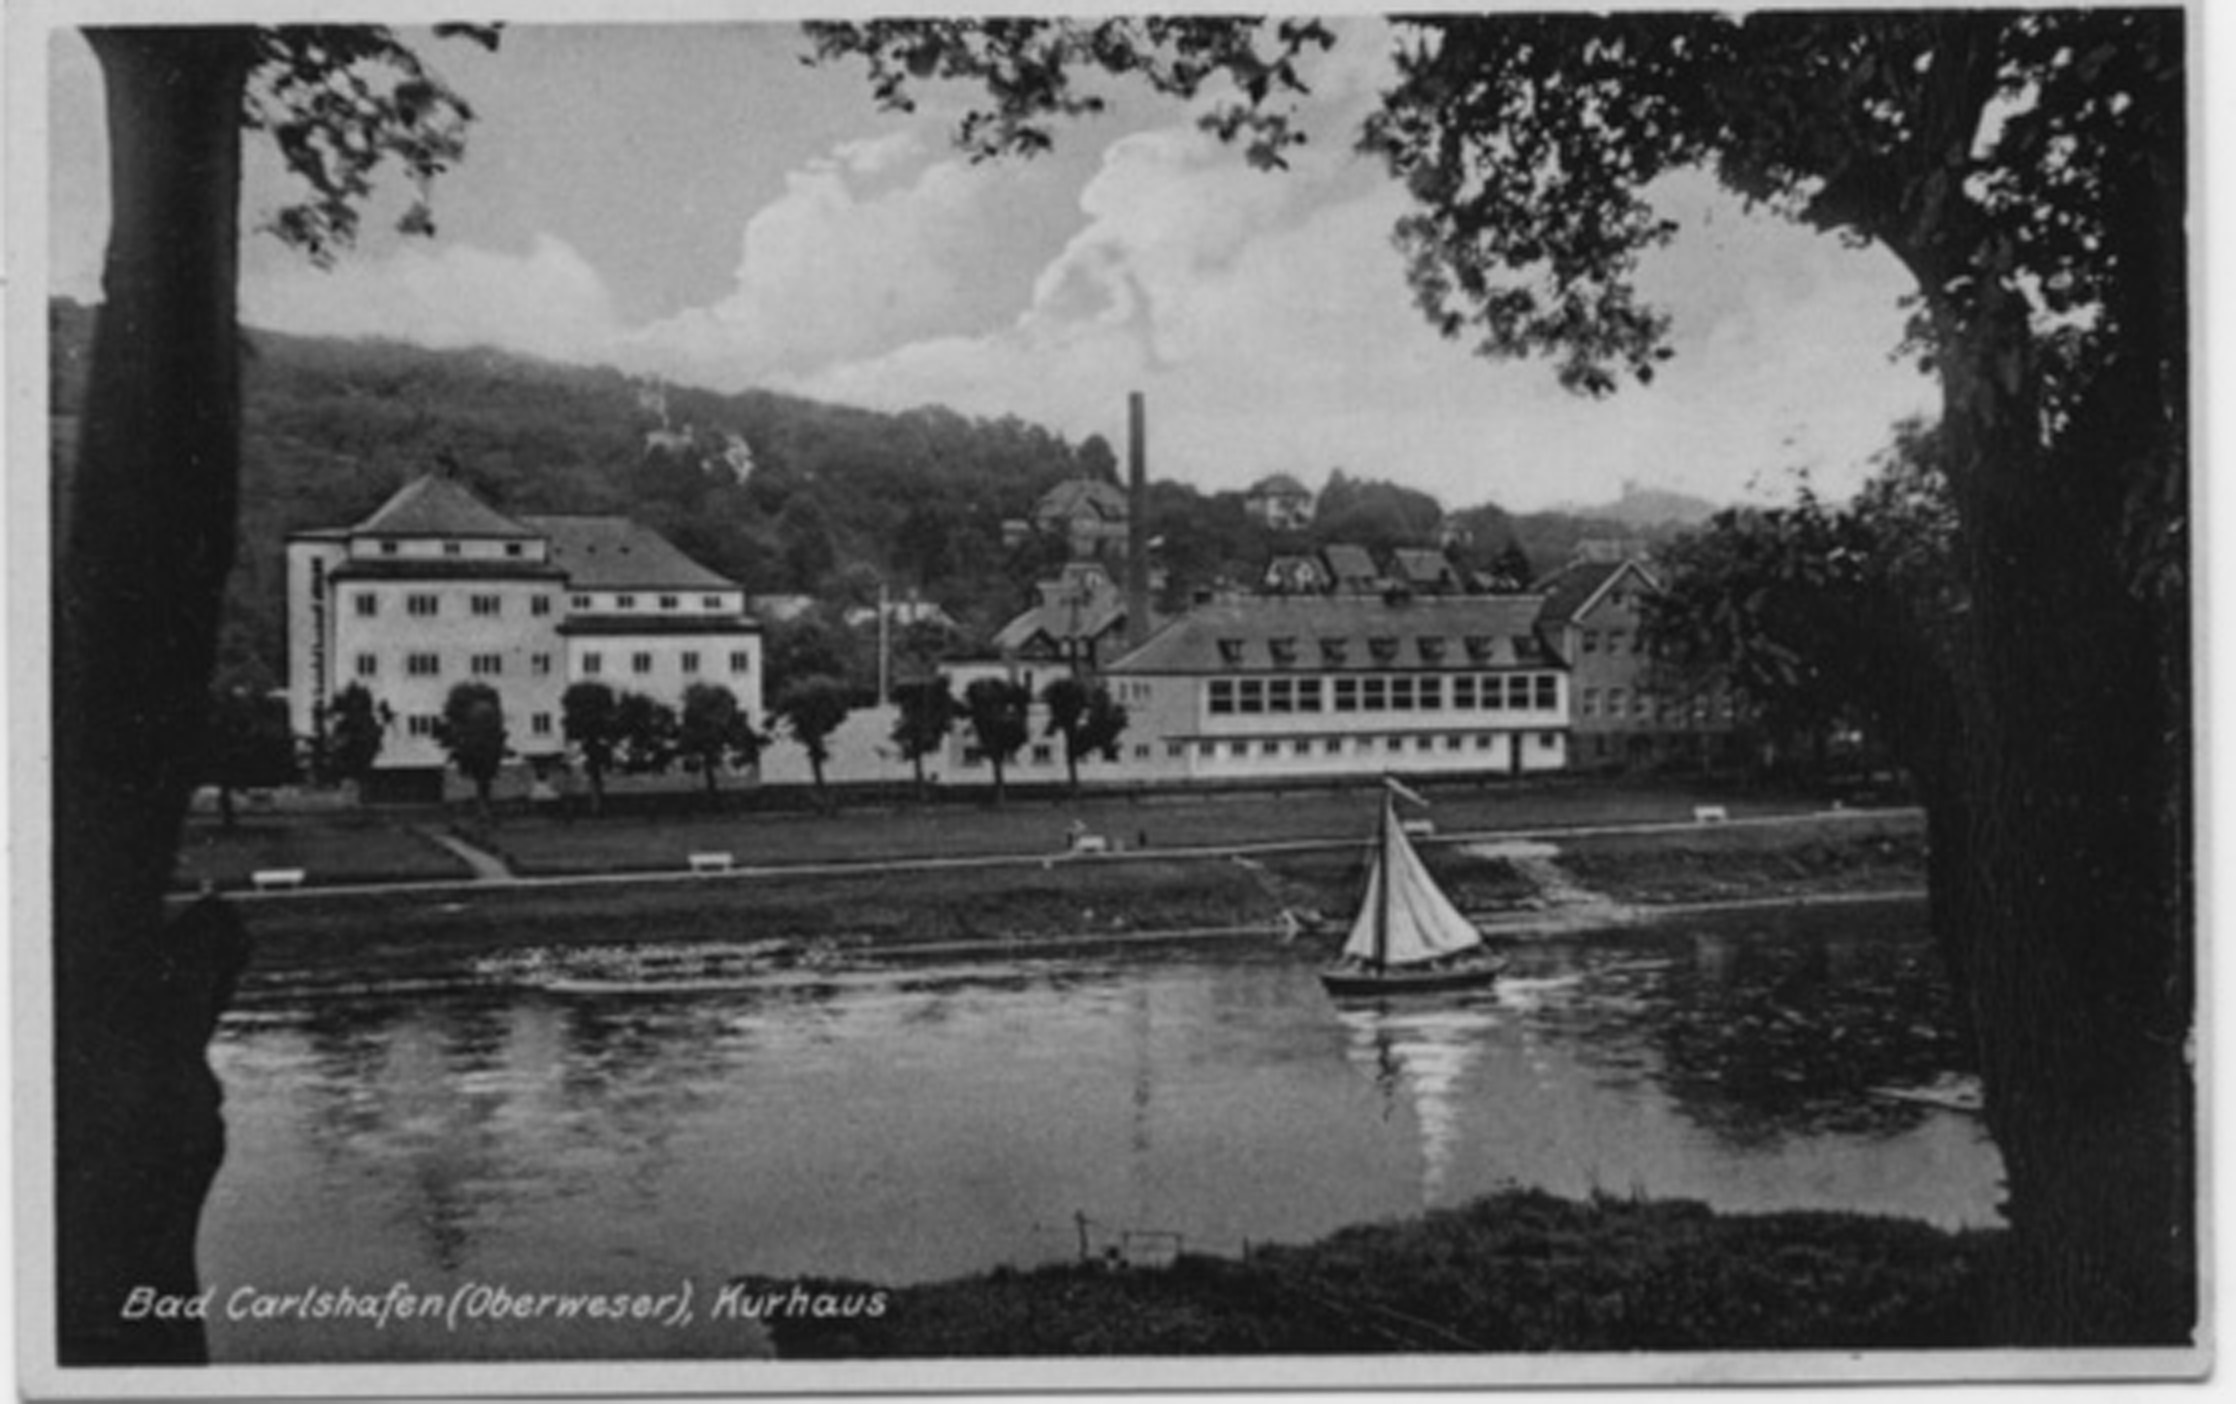 Postcard from Bad Karlshafen 1934